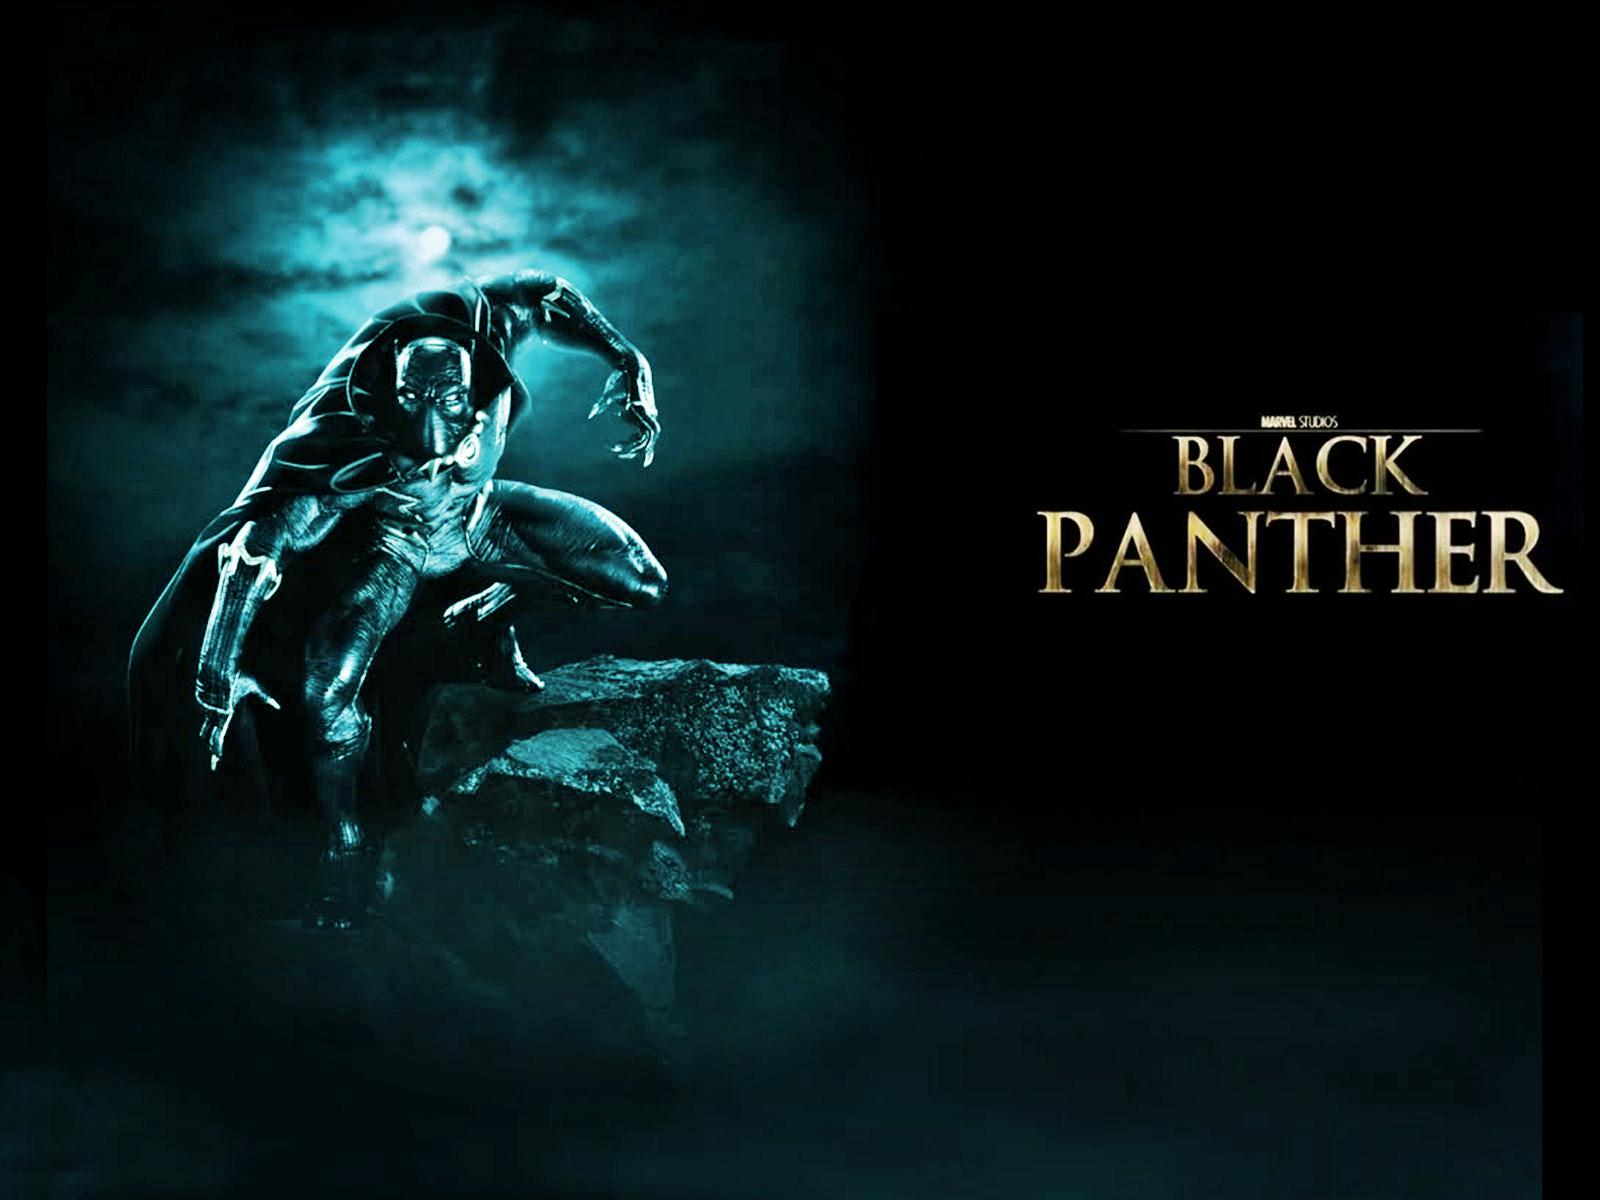 commarvel black panther 2017 movie coming hd wallpaperhtml 1600x1200